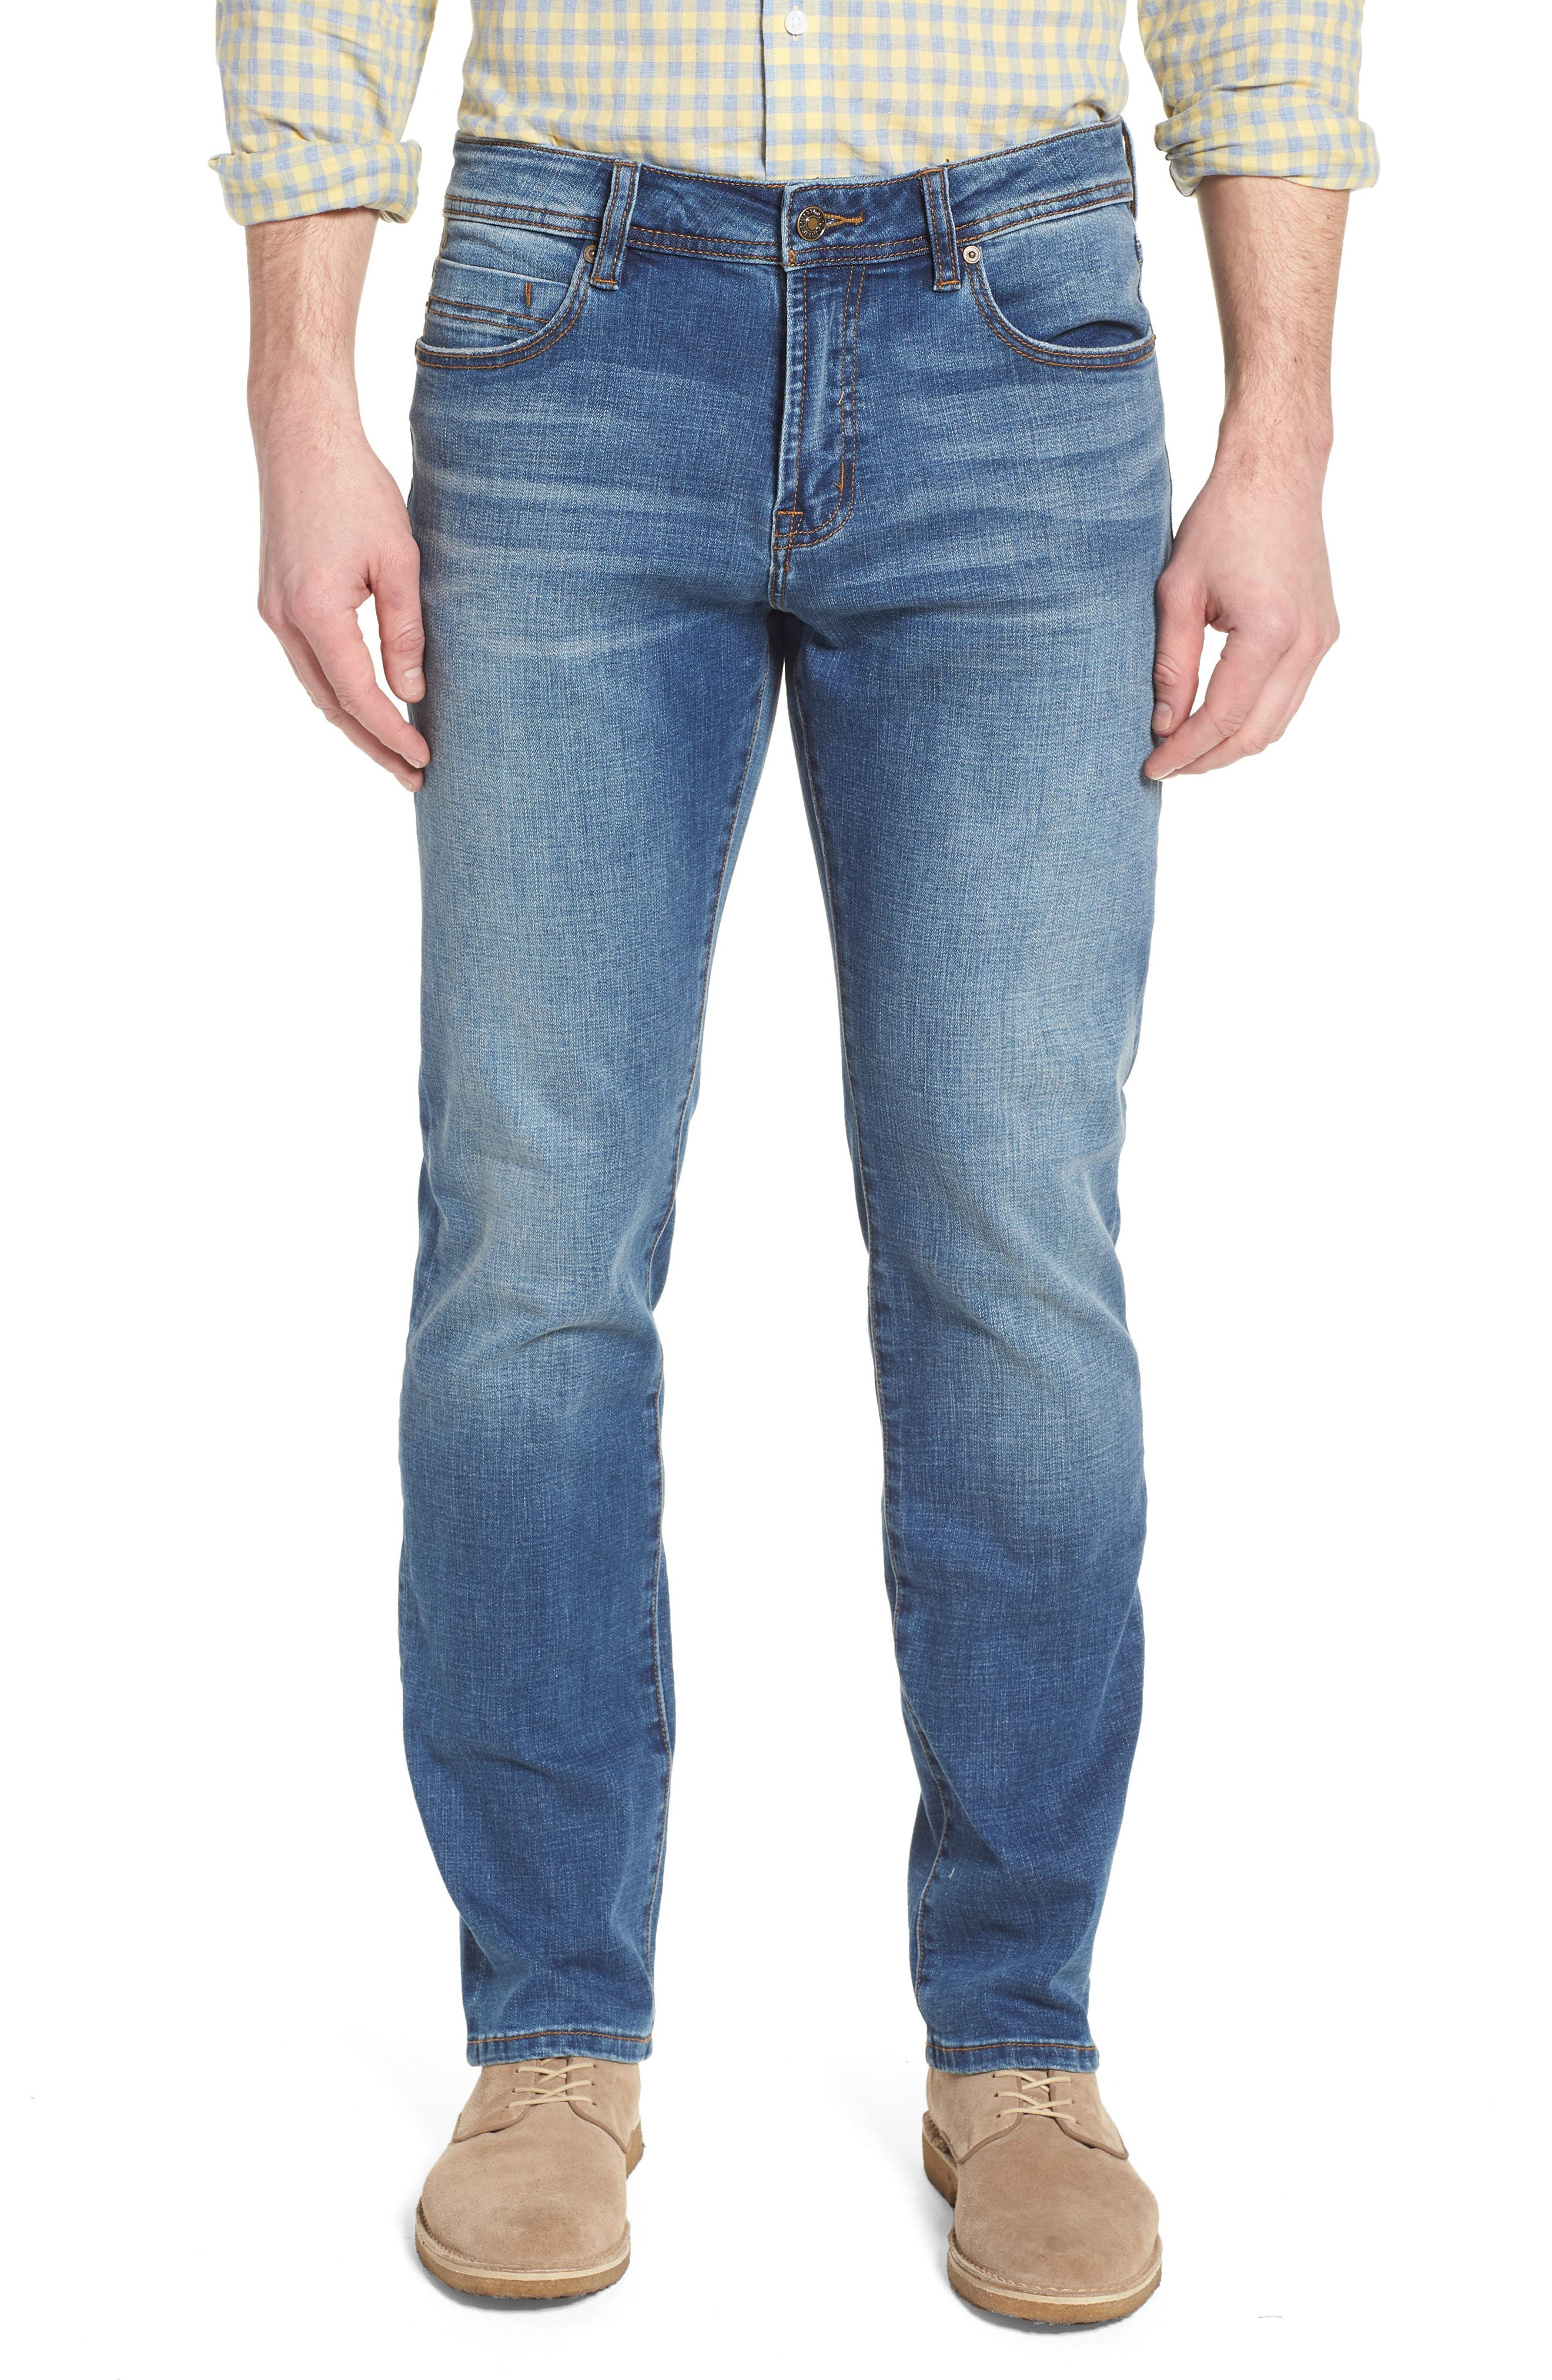 Jeans Co. Regent Relaxed Straight Leg Jeans,                             Main thumbnail 1, color,                             402